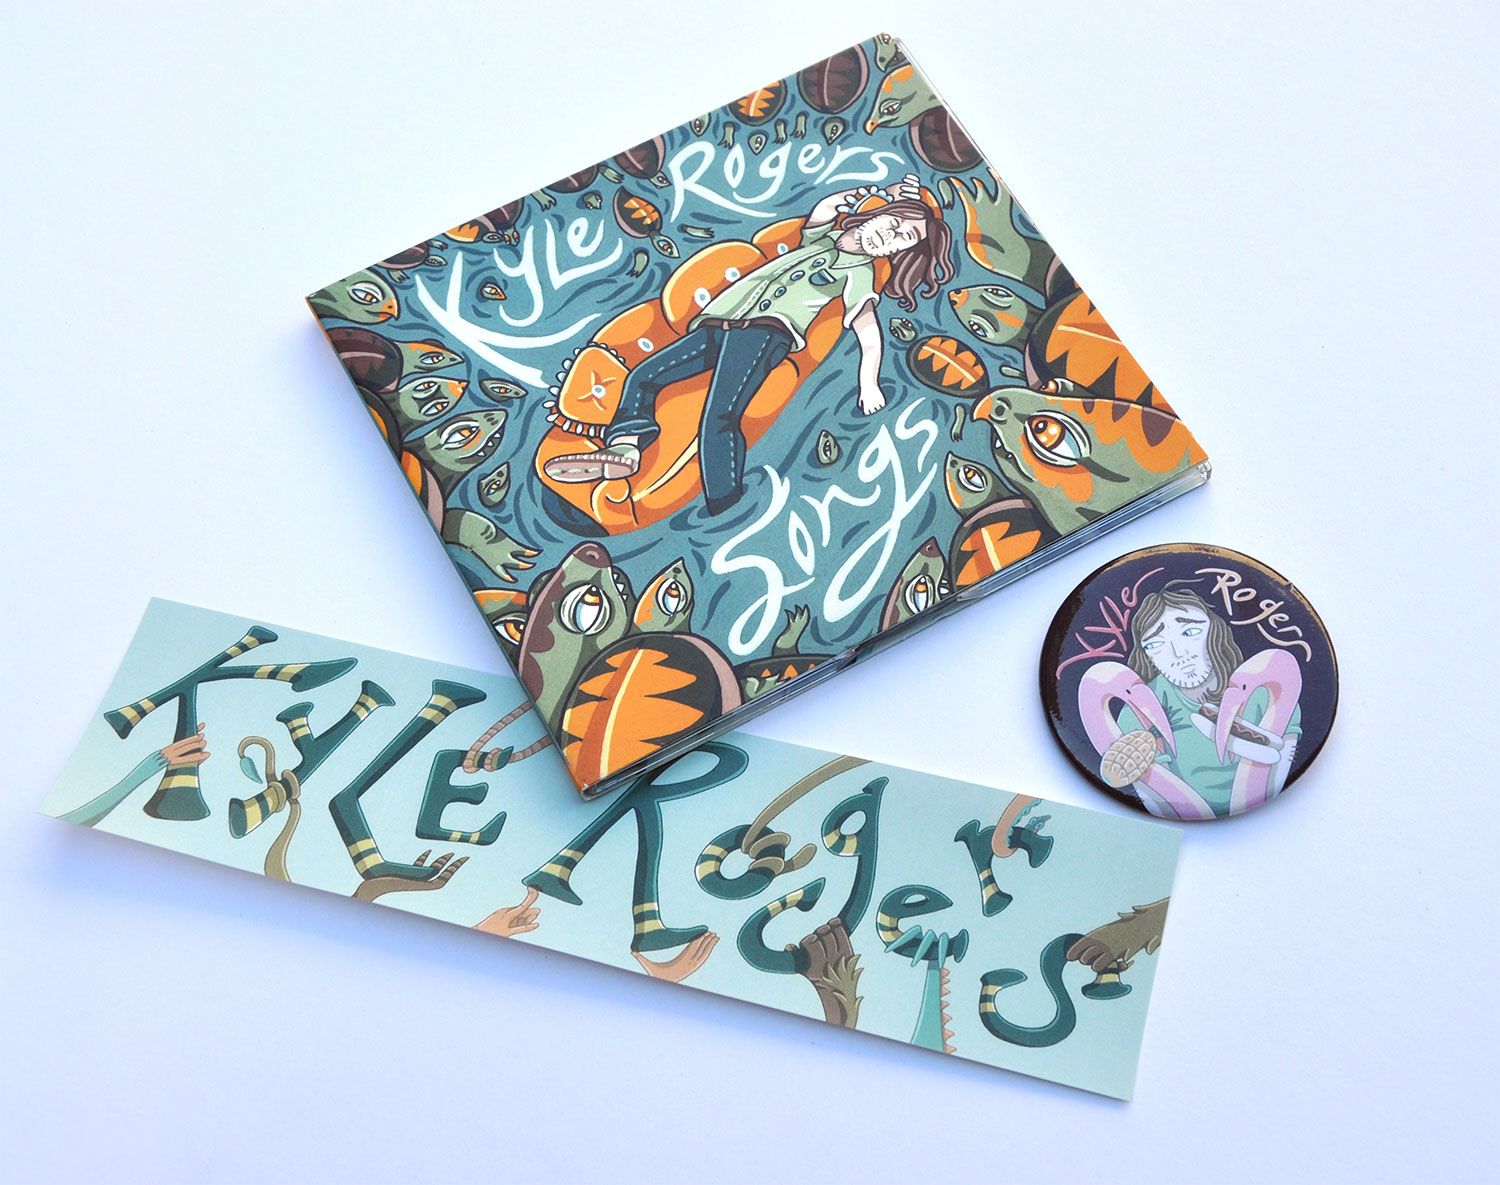 Album art & merch for Kyle Rogers